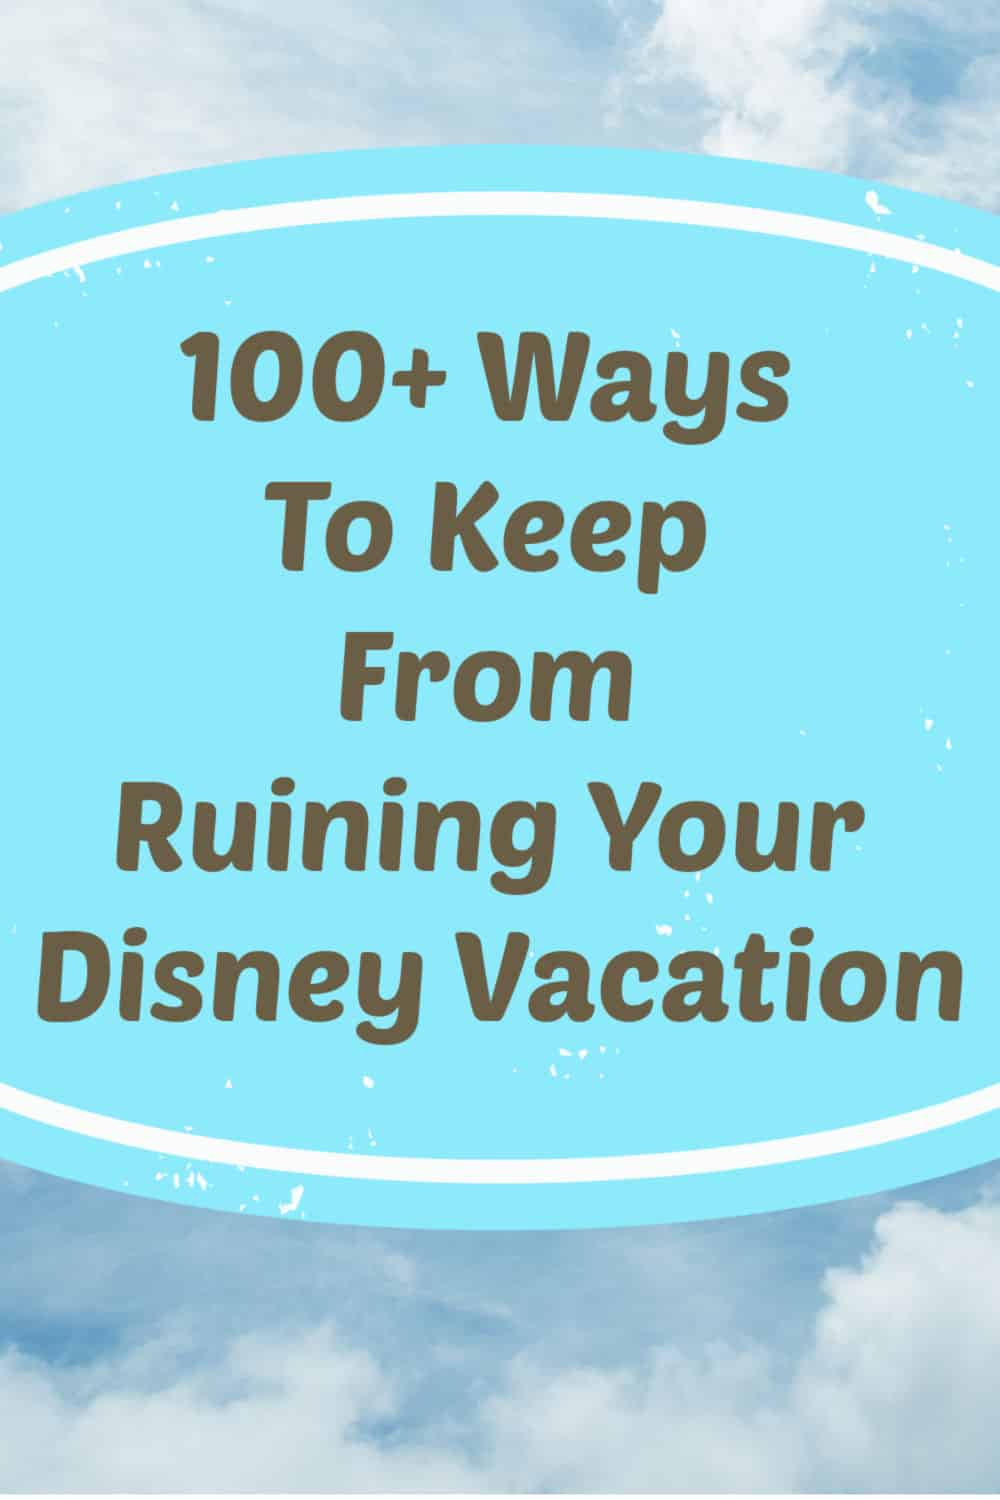 100 plus ways to keep from ruining your Disney vacation